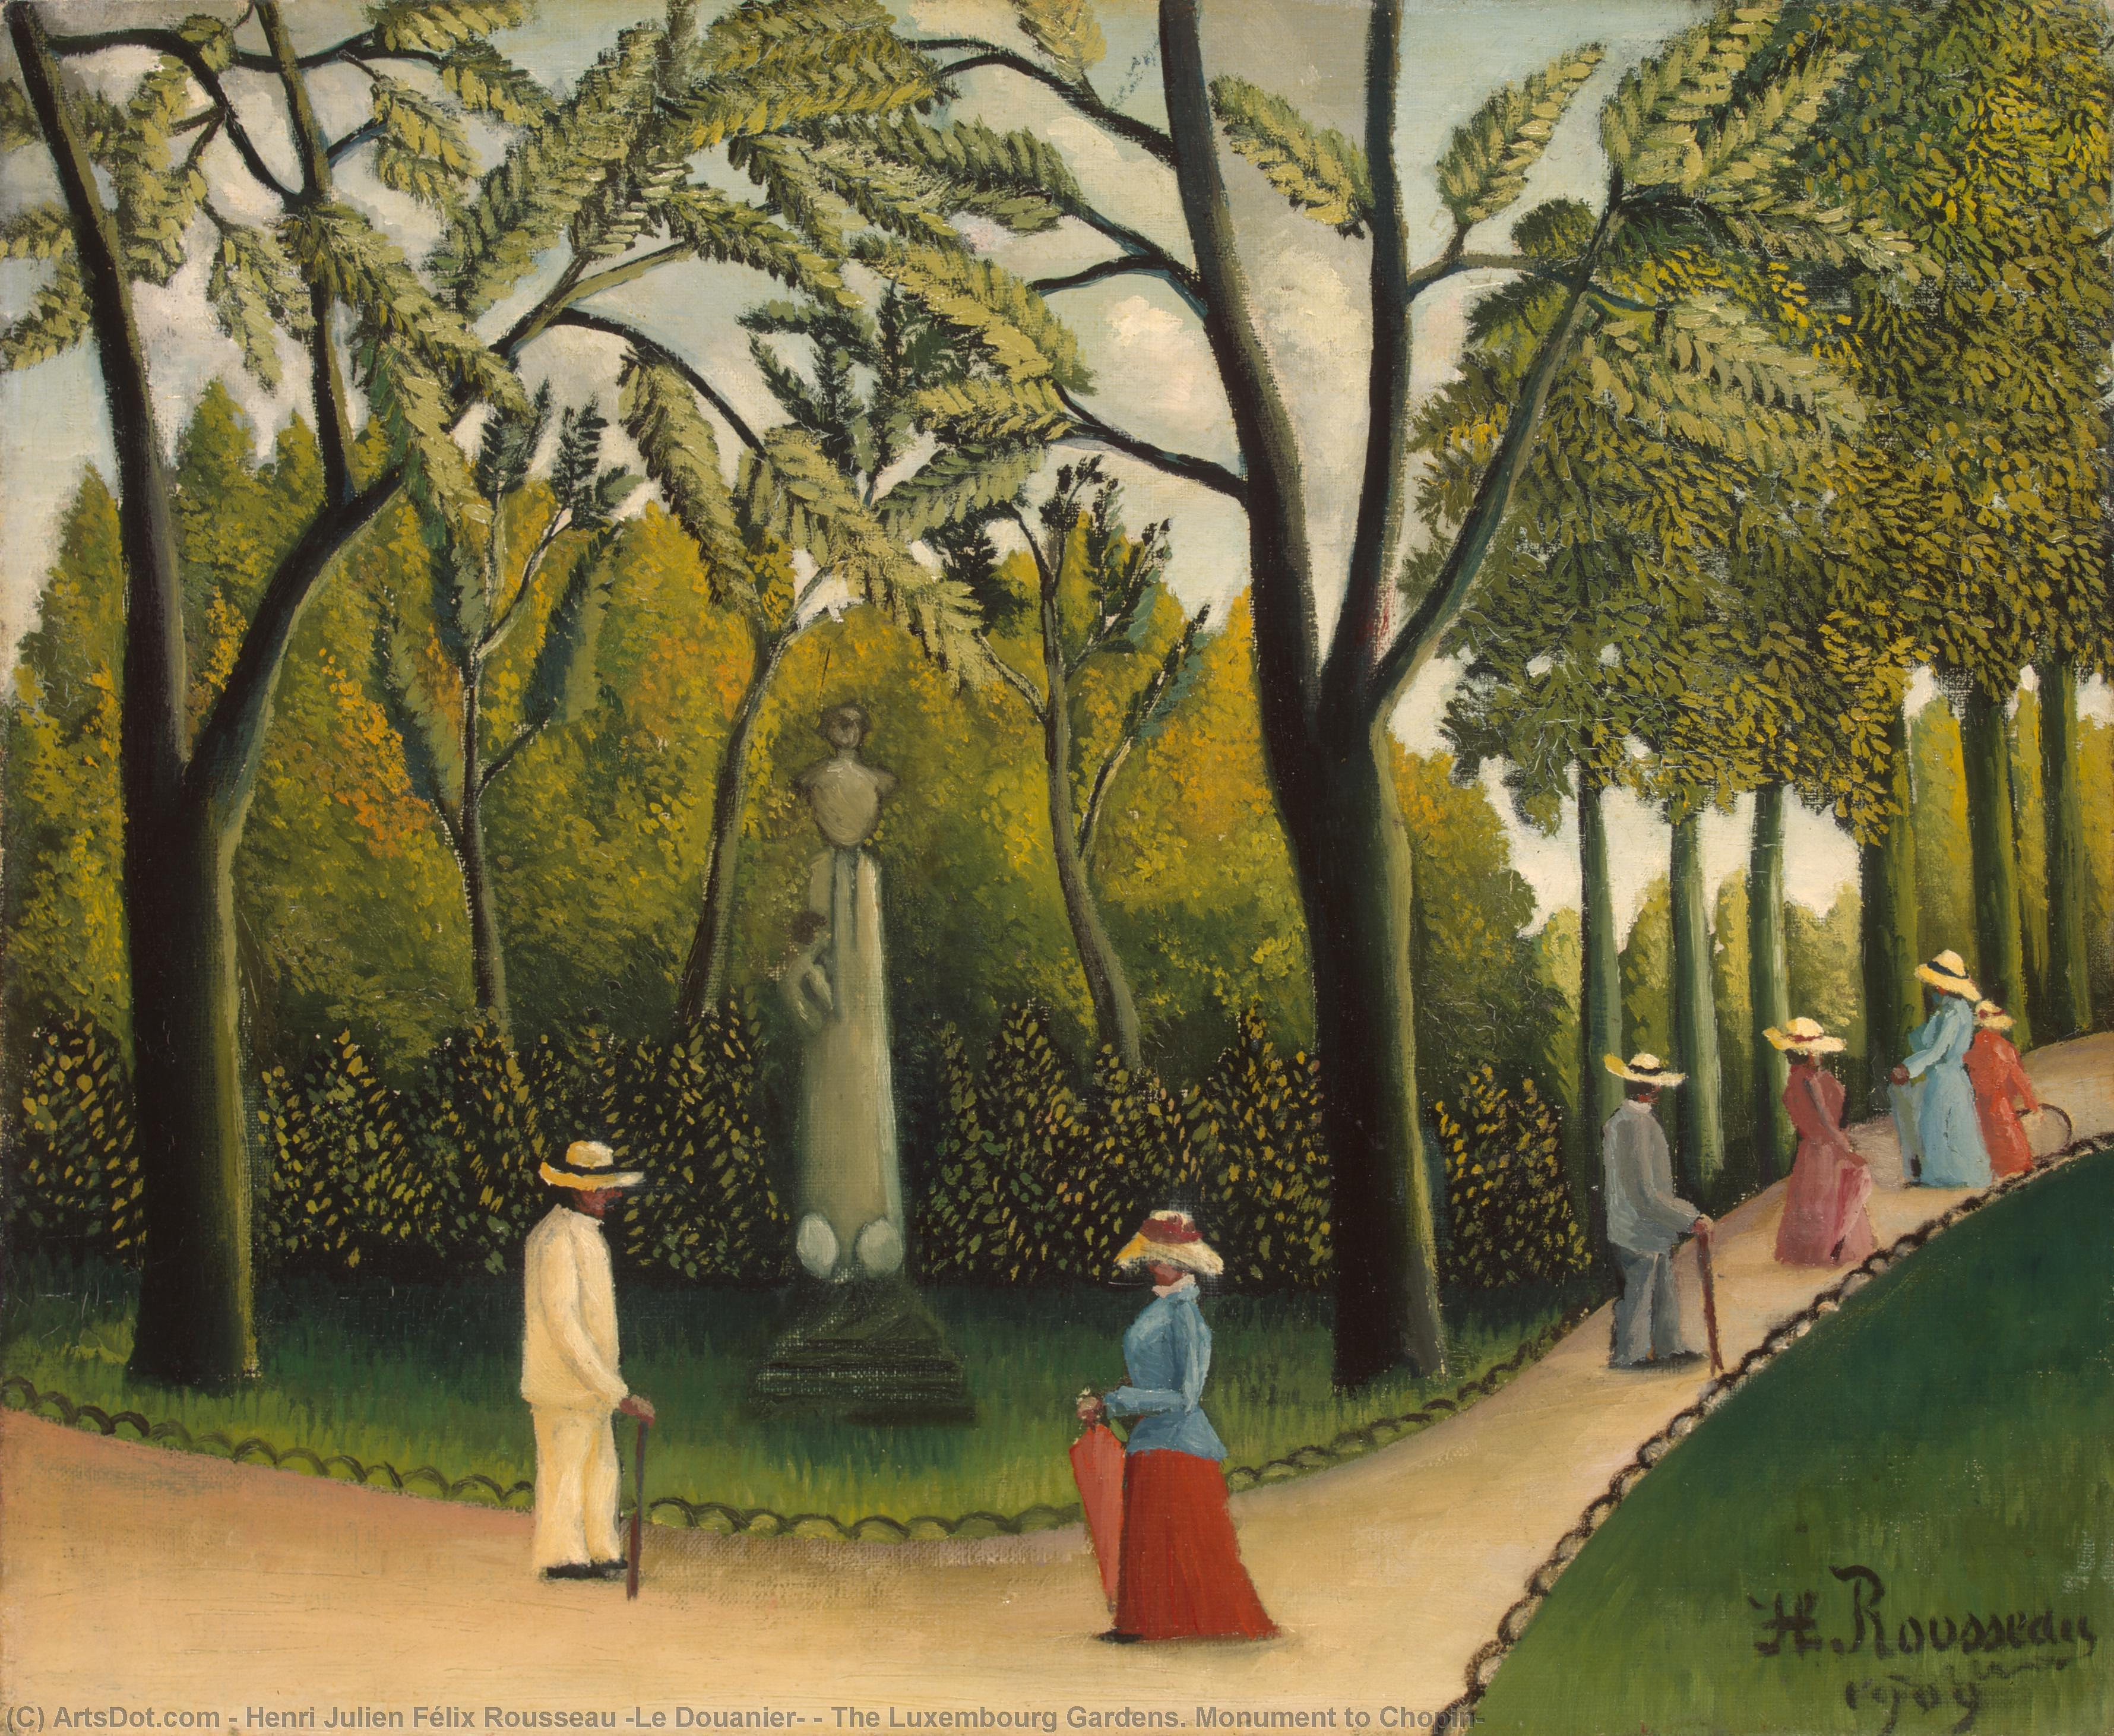 Wikioo.org - The Encyclopedia of Fine Arts - Painting, Artwork by Henri Julien Félix Rousseau (Le Douanier) - The Luxembourg Gardens. Monument to Chopin,